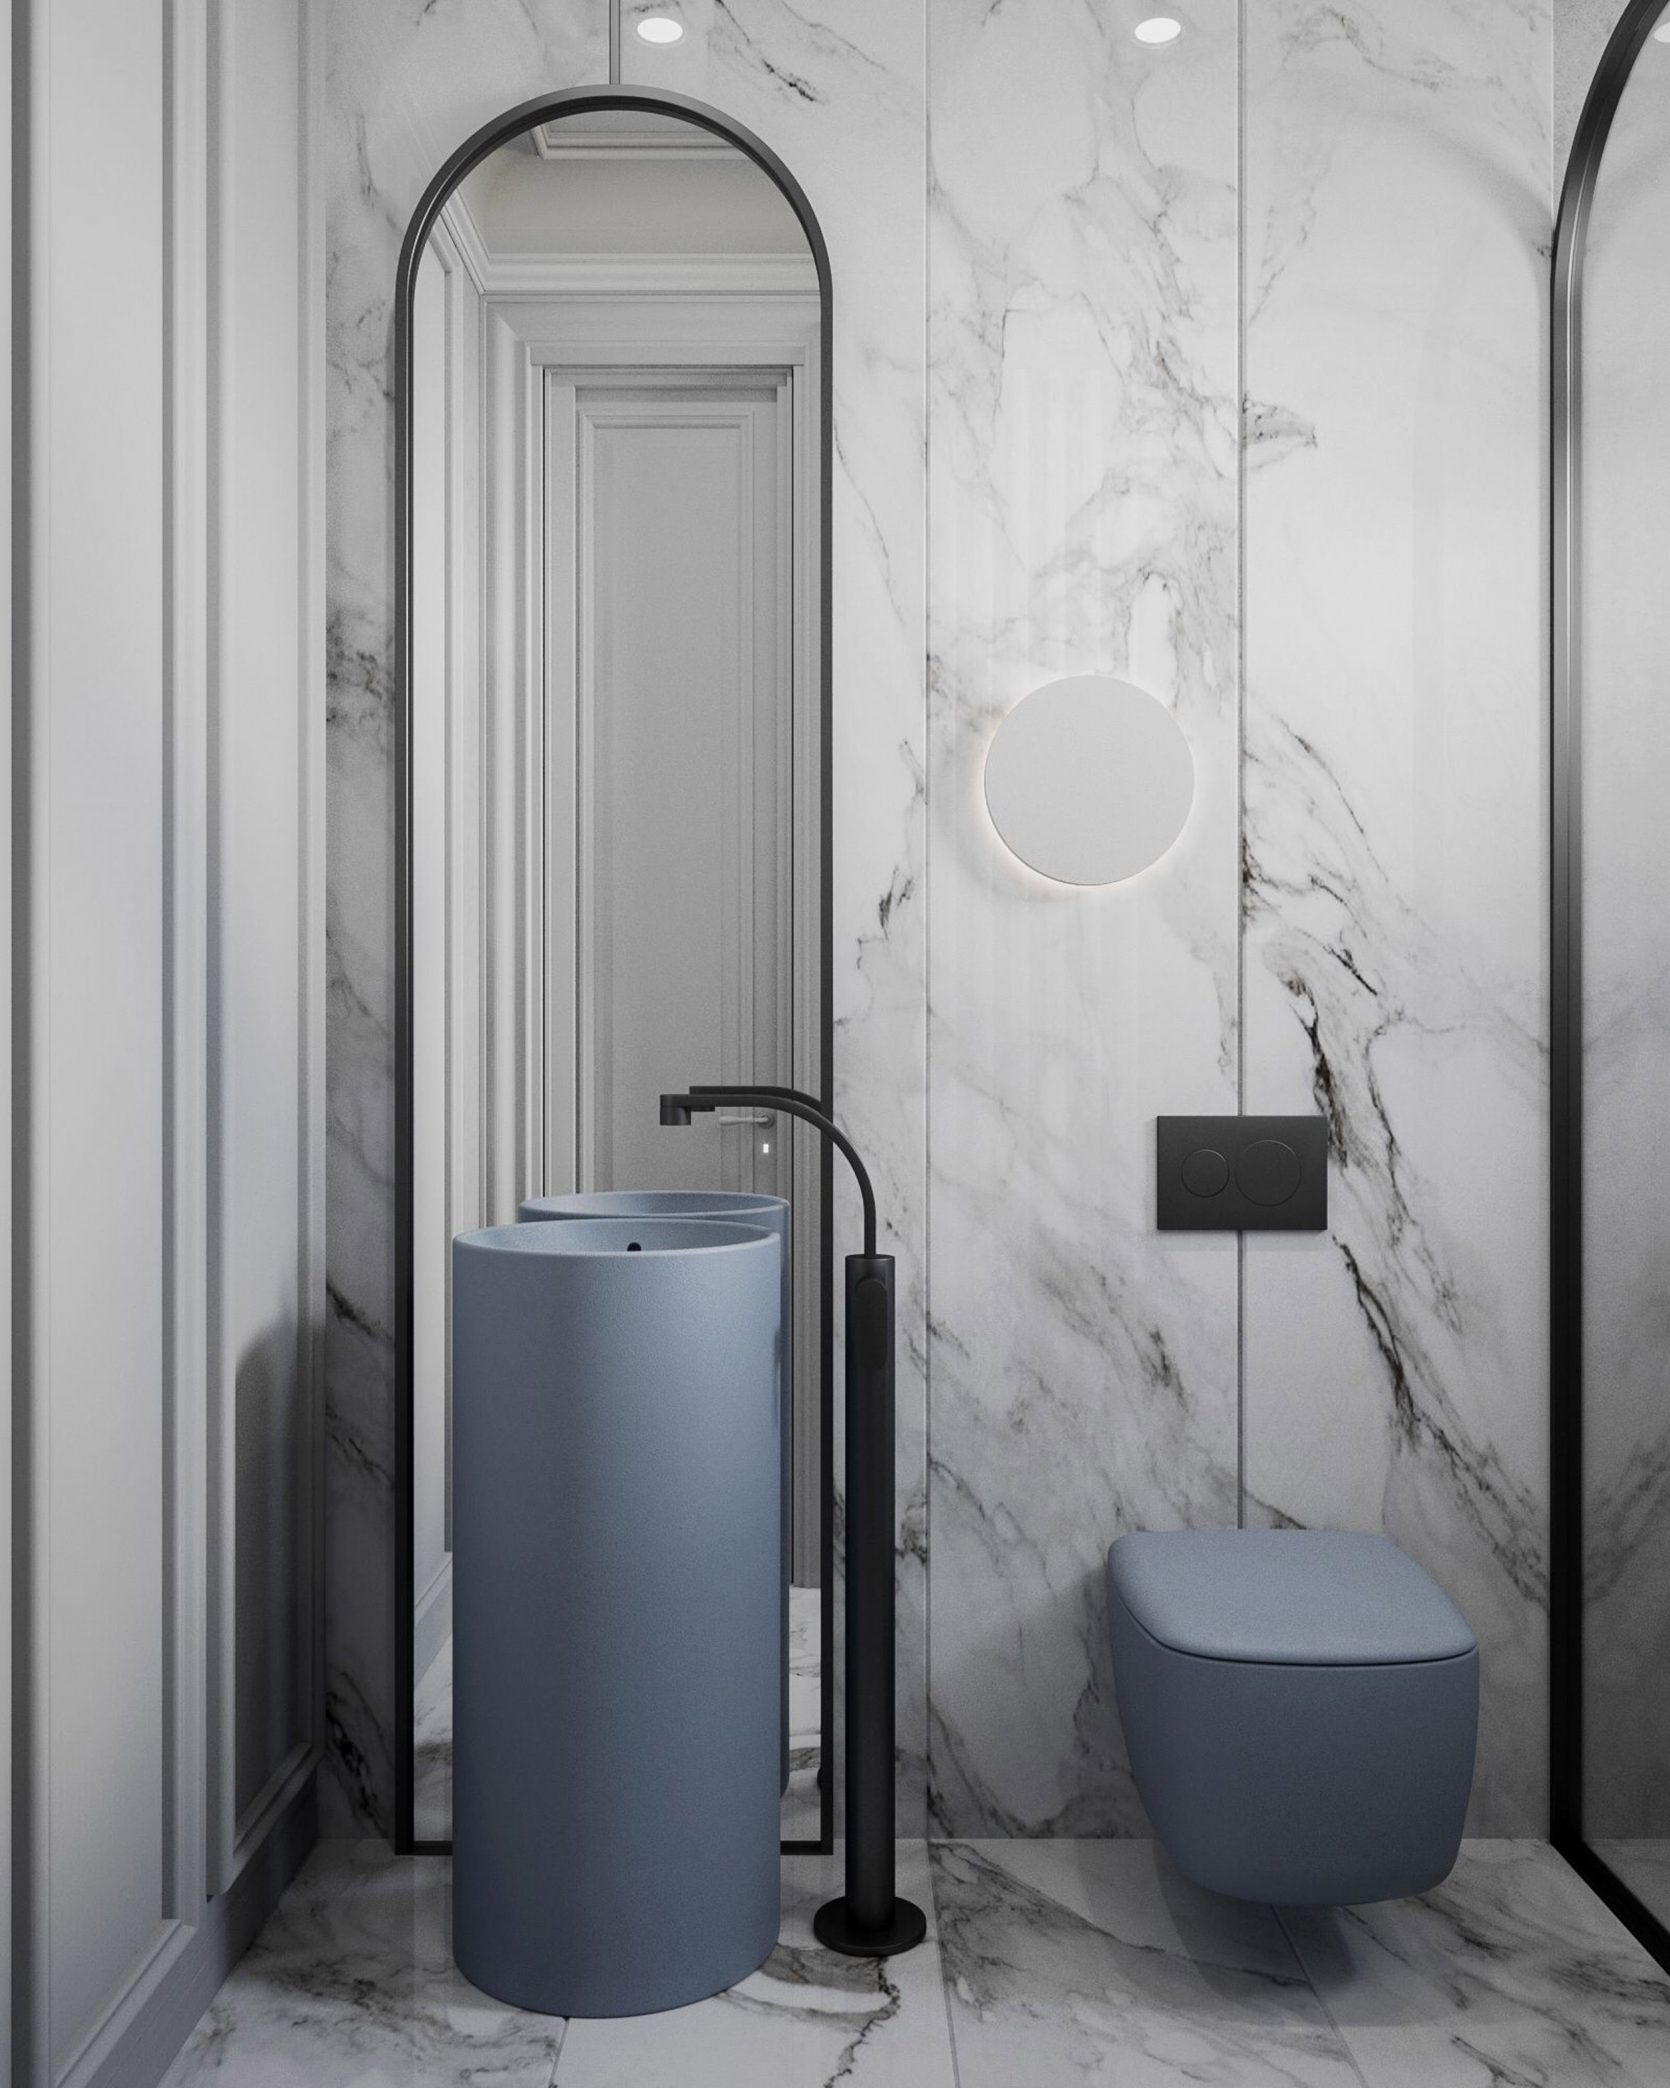 10 of the Most Exciting Bathroom Design Trends for 2019 #modernpowderrooms